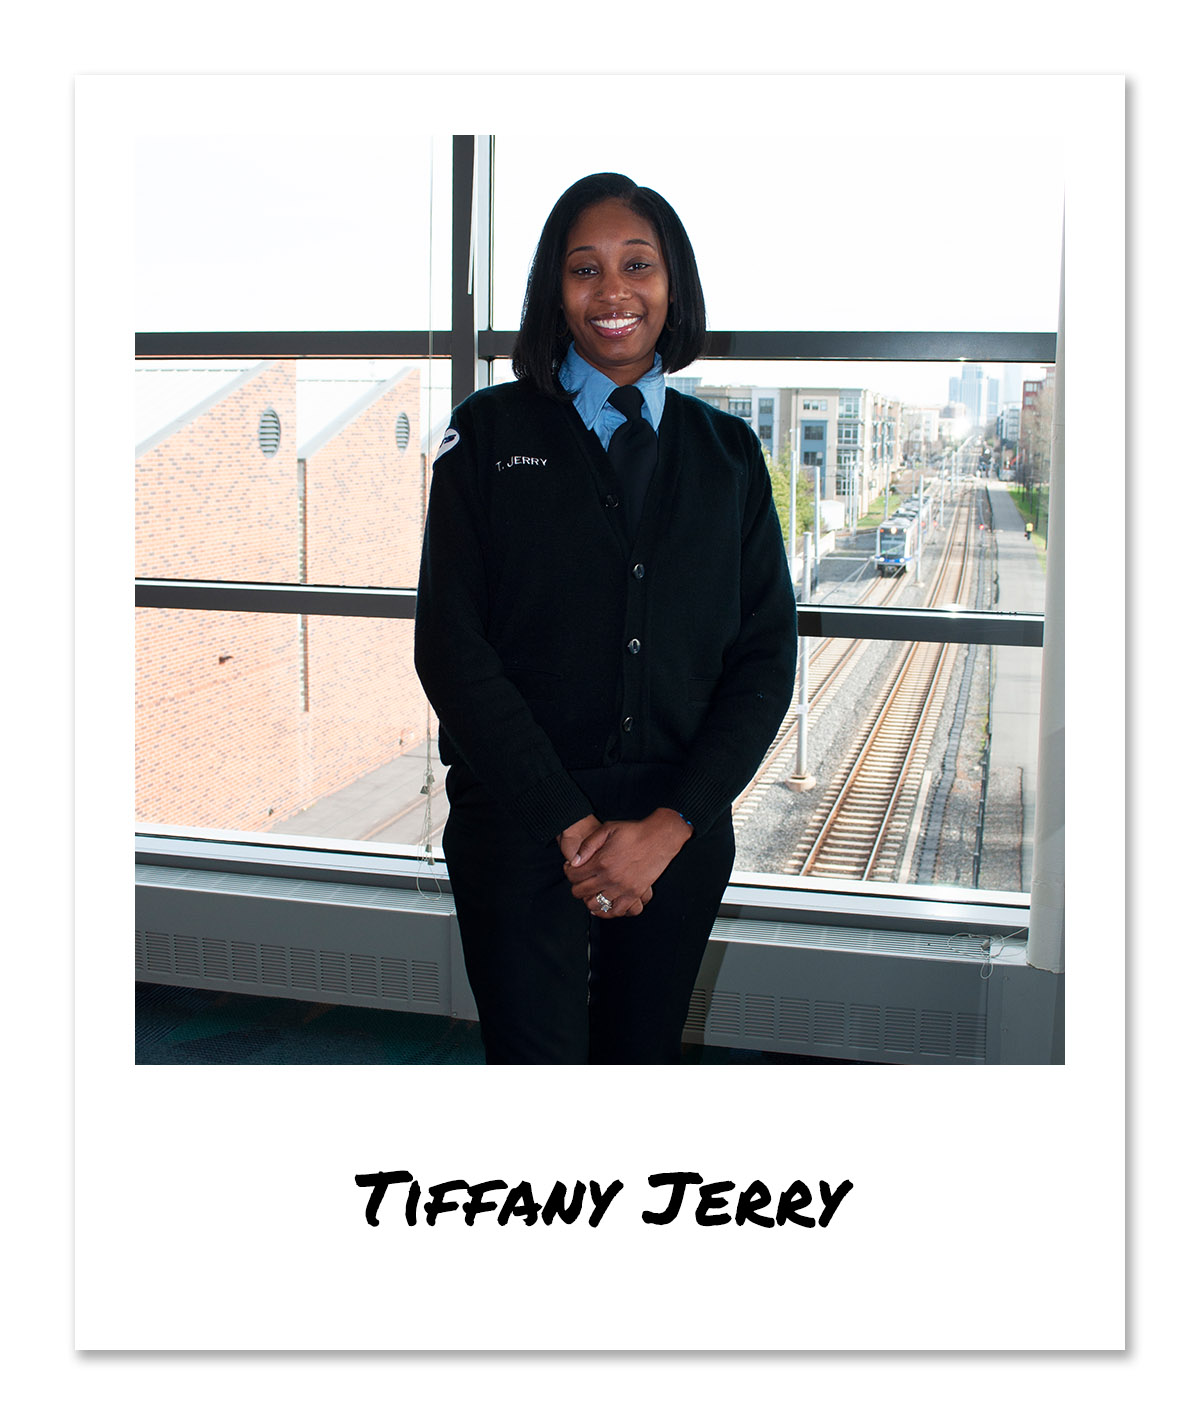 click on the image of LYNX Light Rail Operator - Tiffany Jerry to hear and see the video